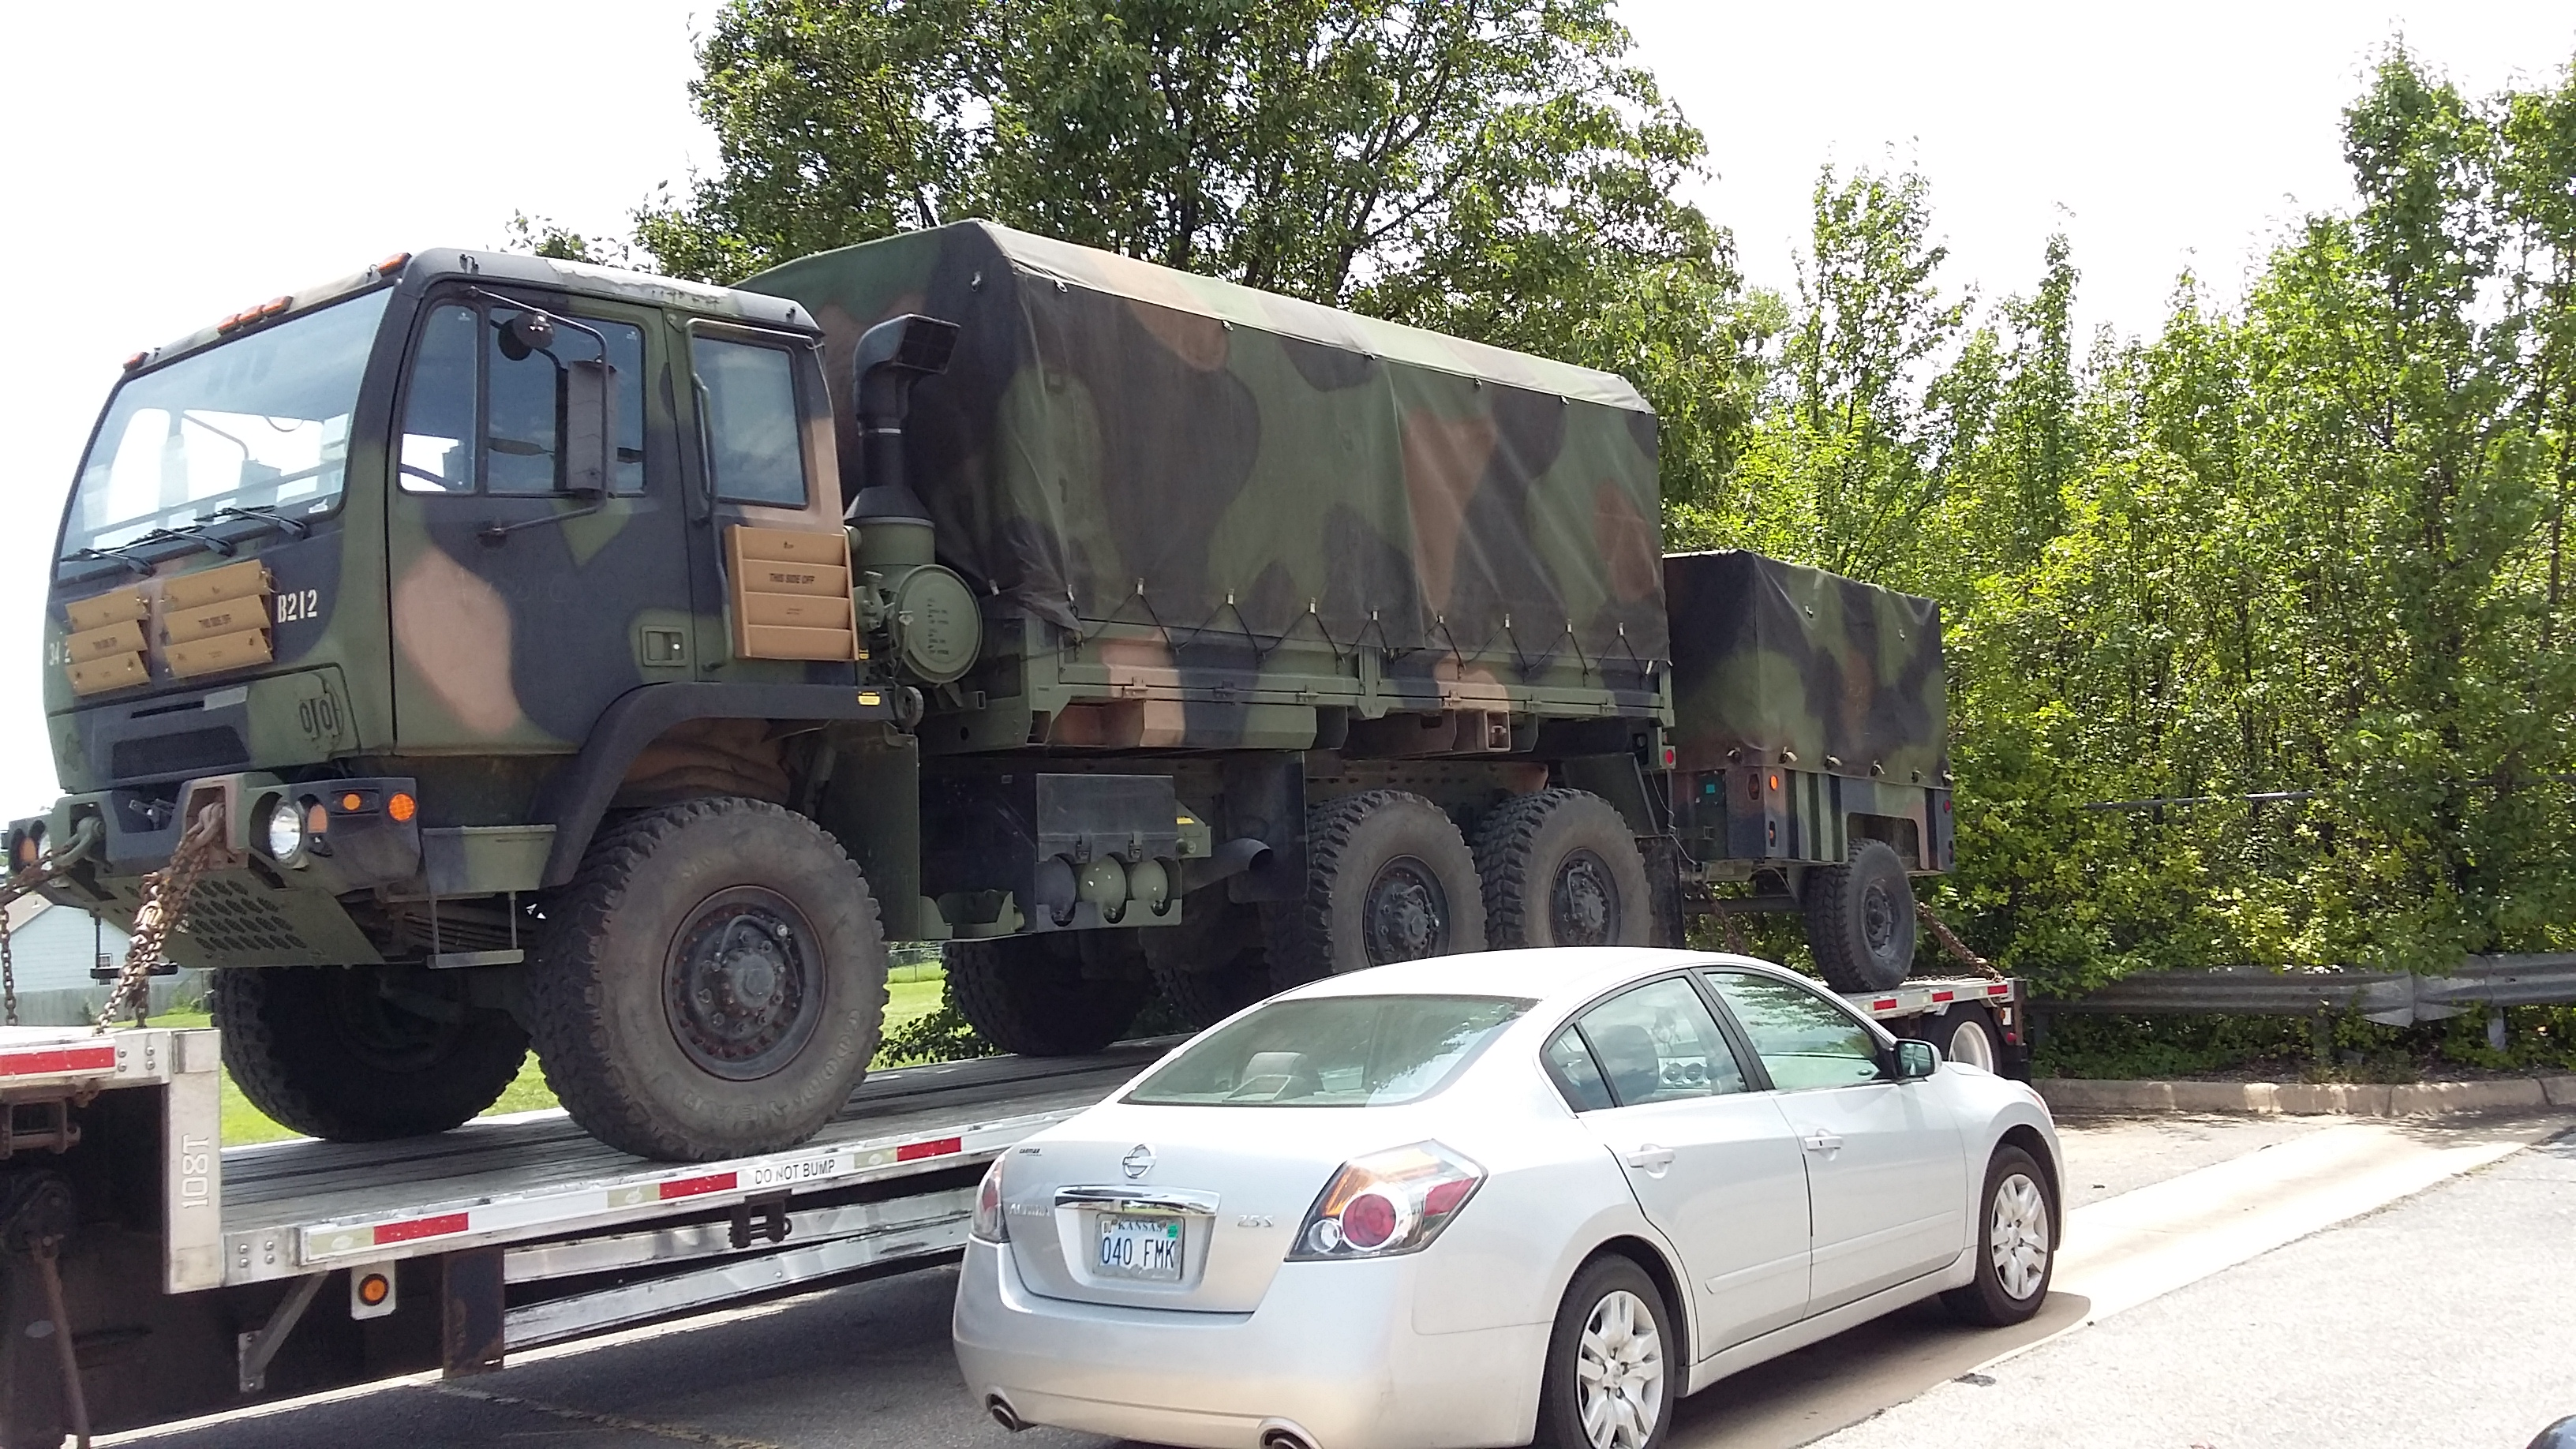 Report: UN Troops Tackle Man In Wal-Mart - Will ISIS Killers In America Lead To Martial Law During Jade Helm 15?